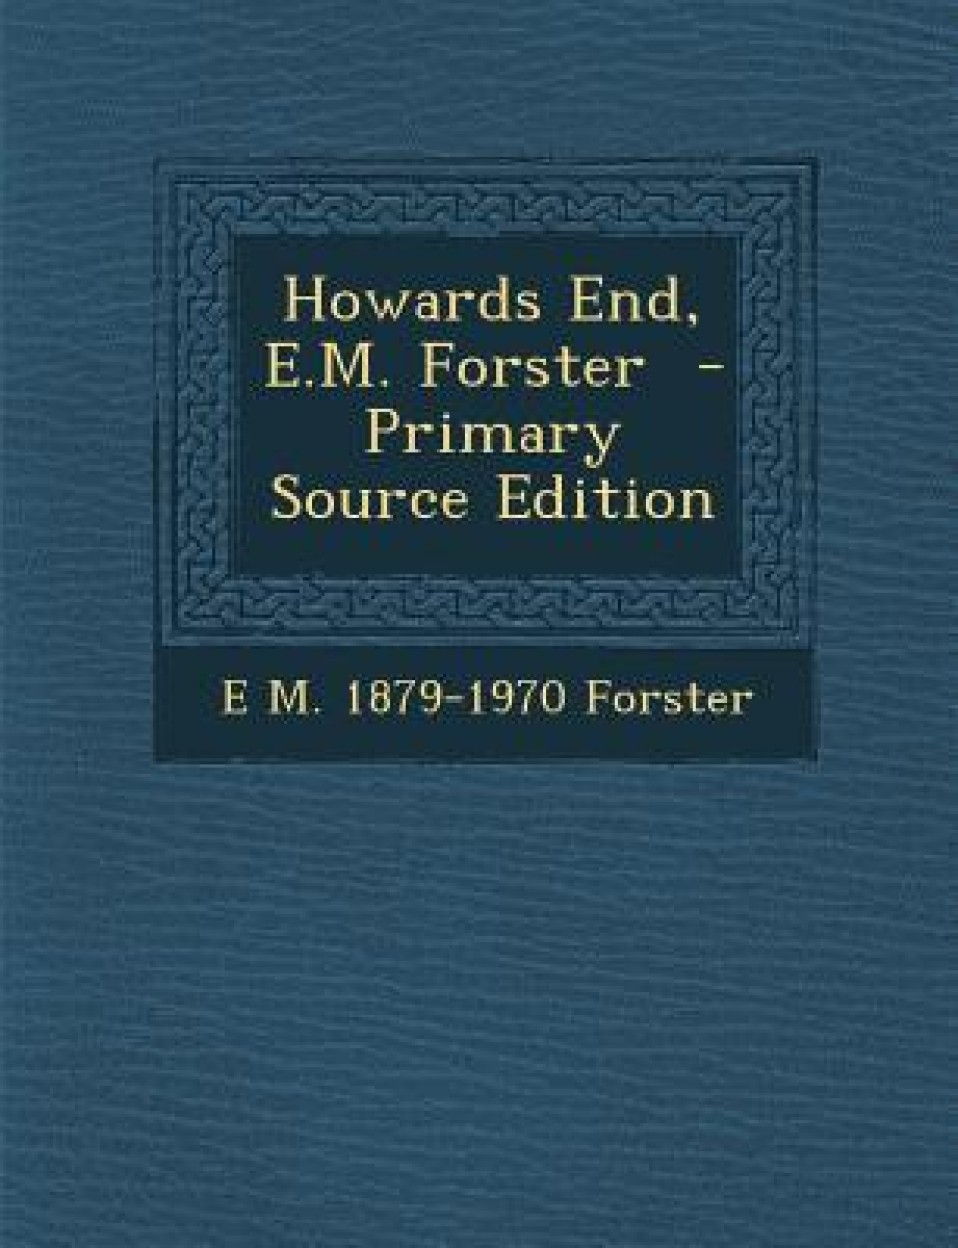 Howards End, E.M. Forster - Primary Source Edition (English) (Paperback)